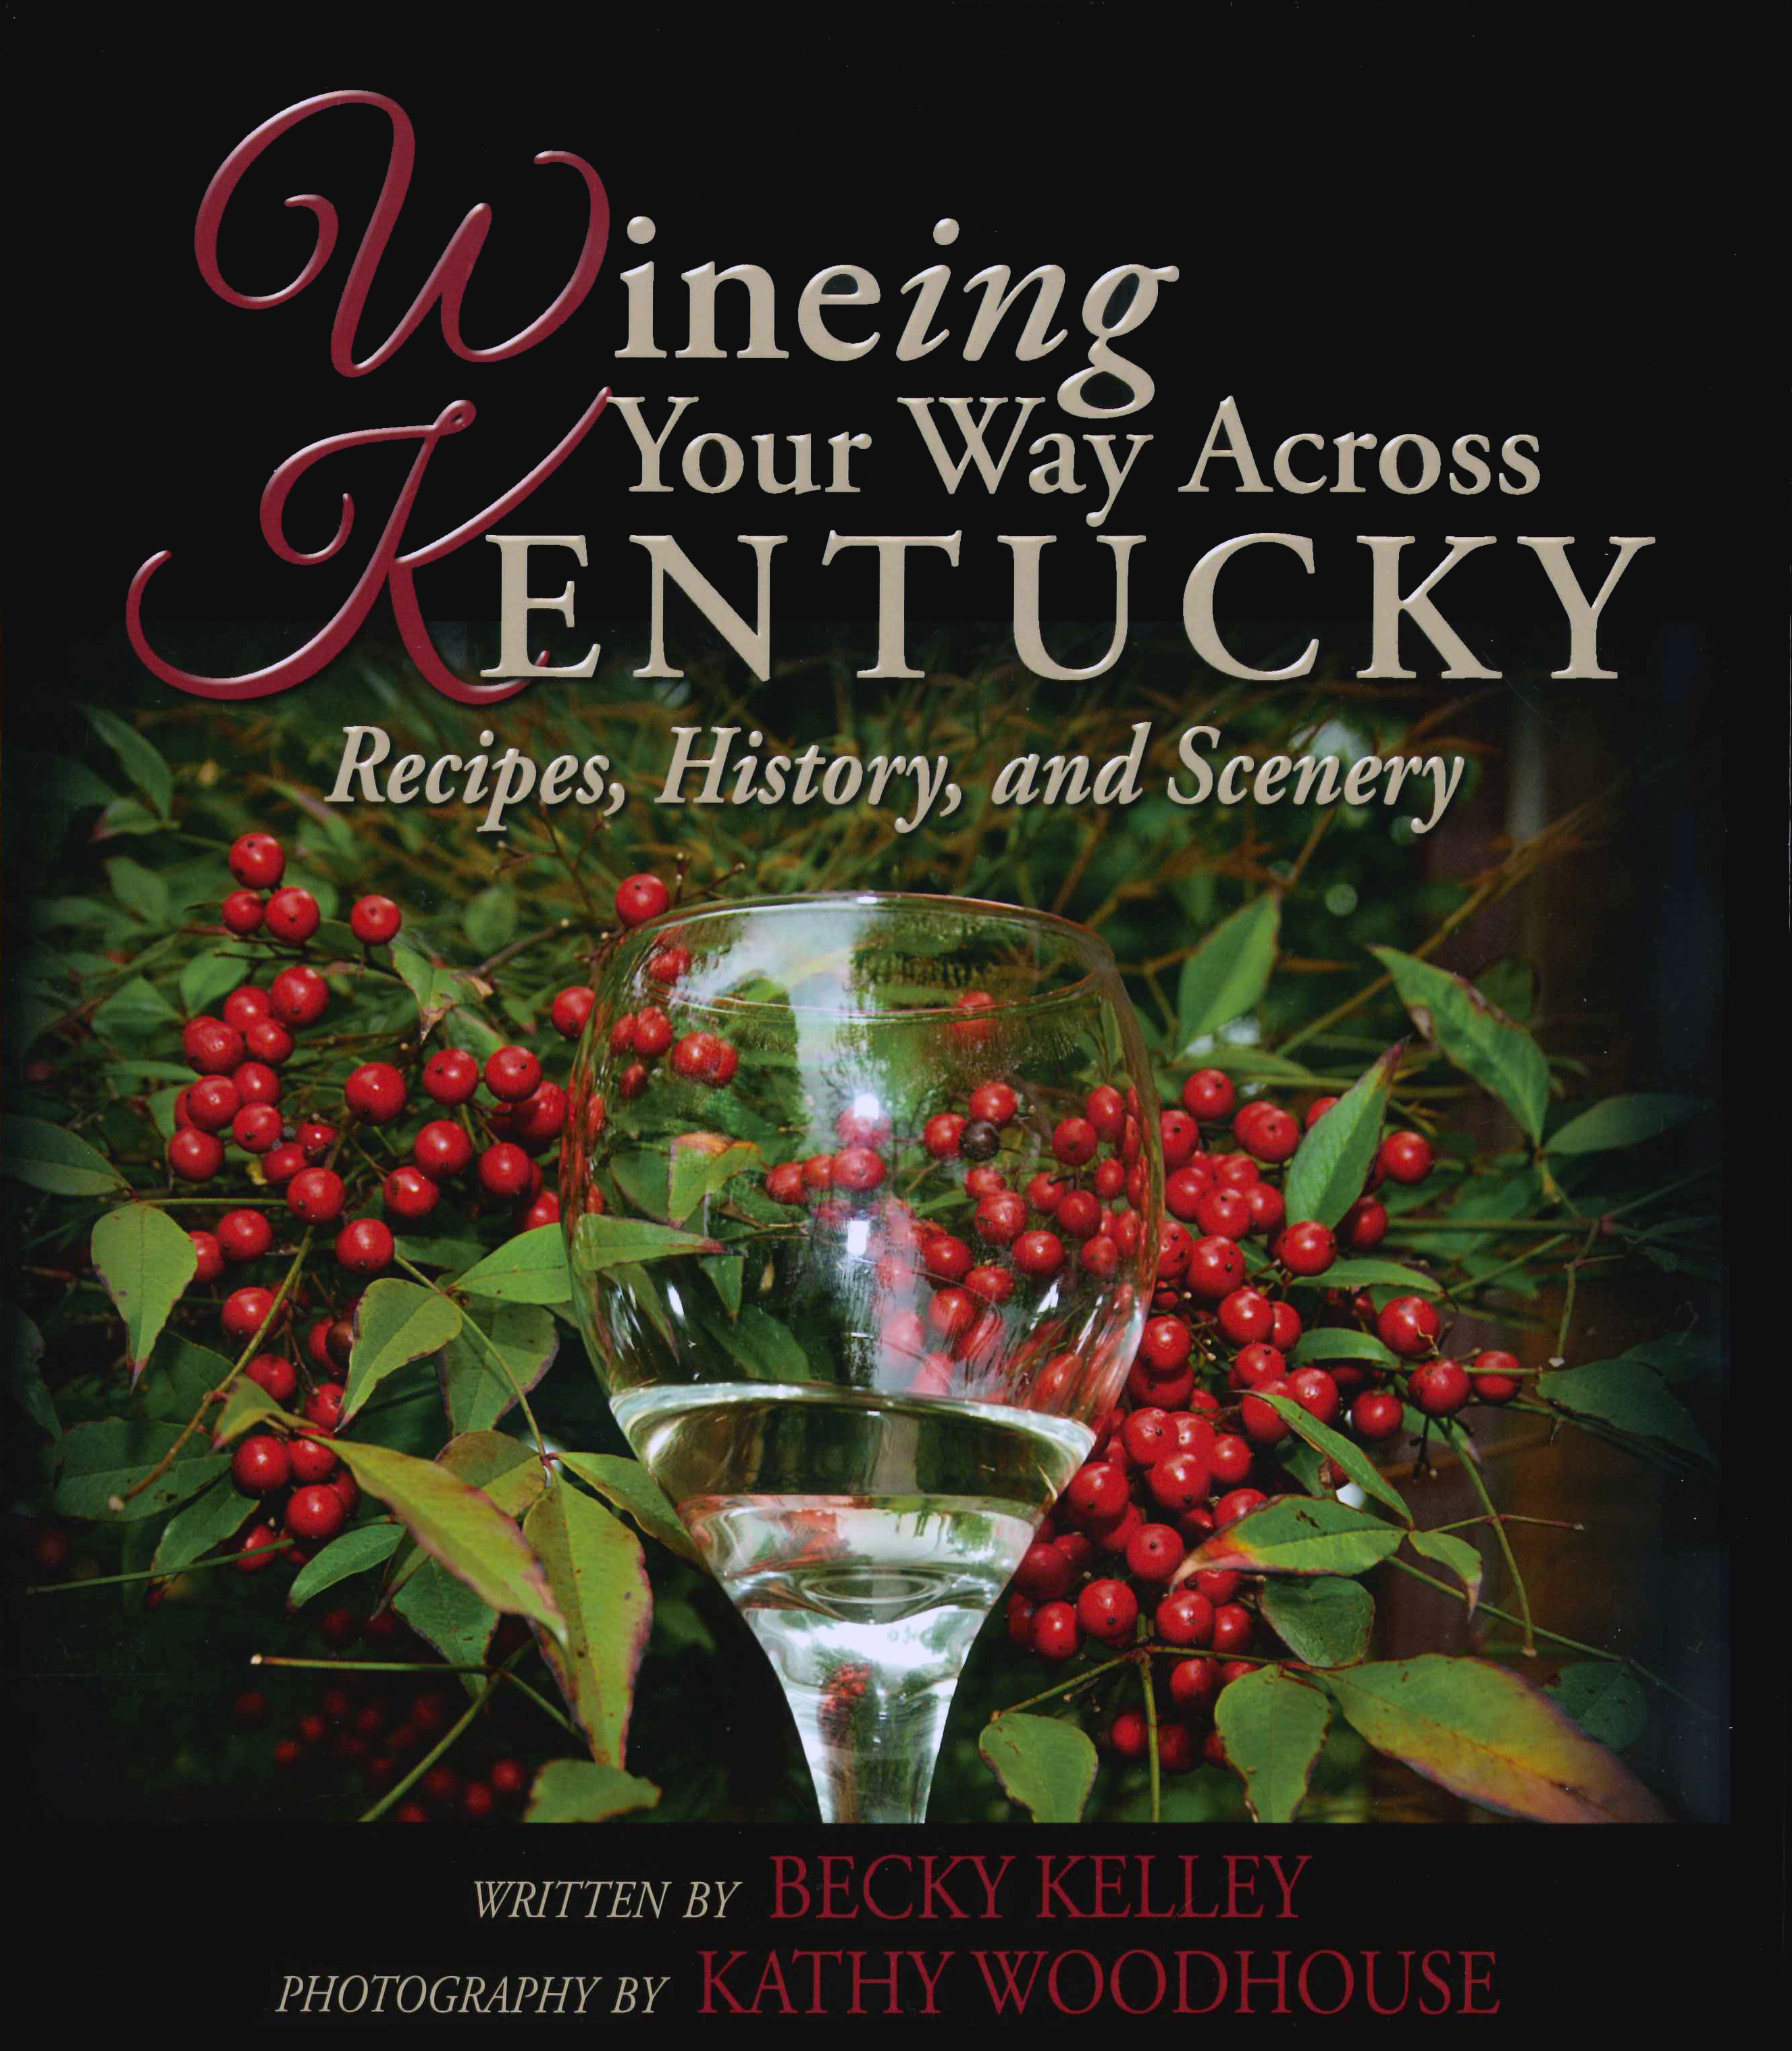 Book cover to Wineing Your Way Across Kentucky, Recipes, History, and Scenery